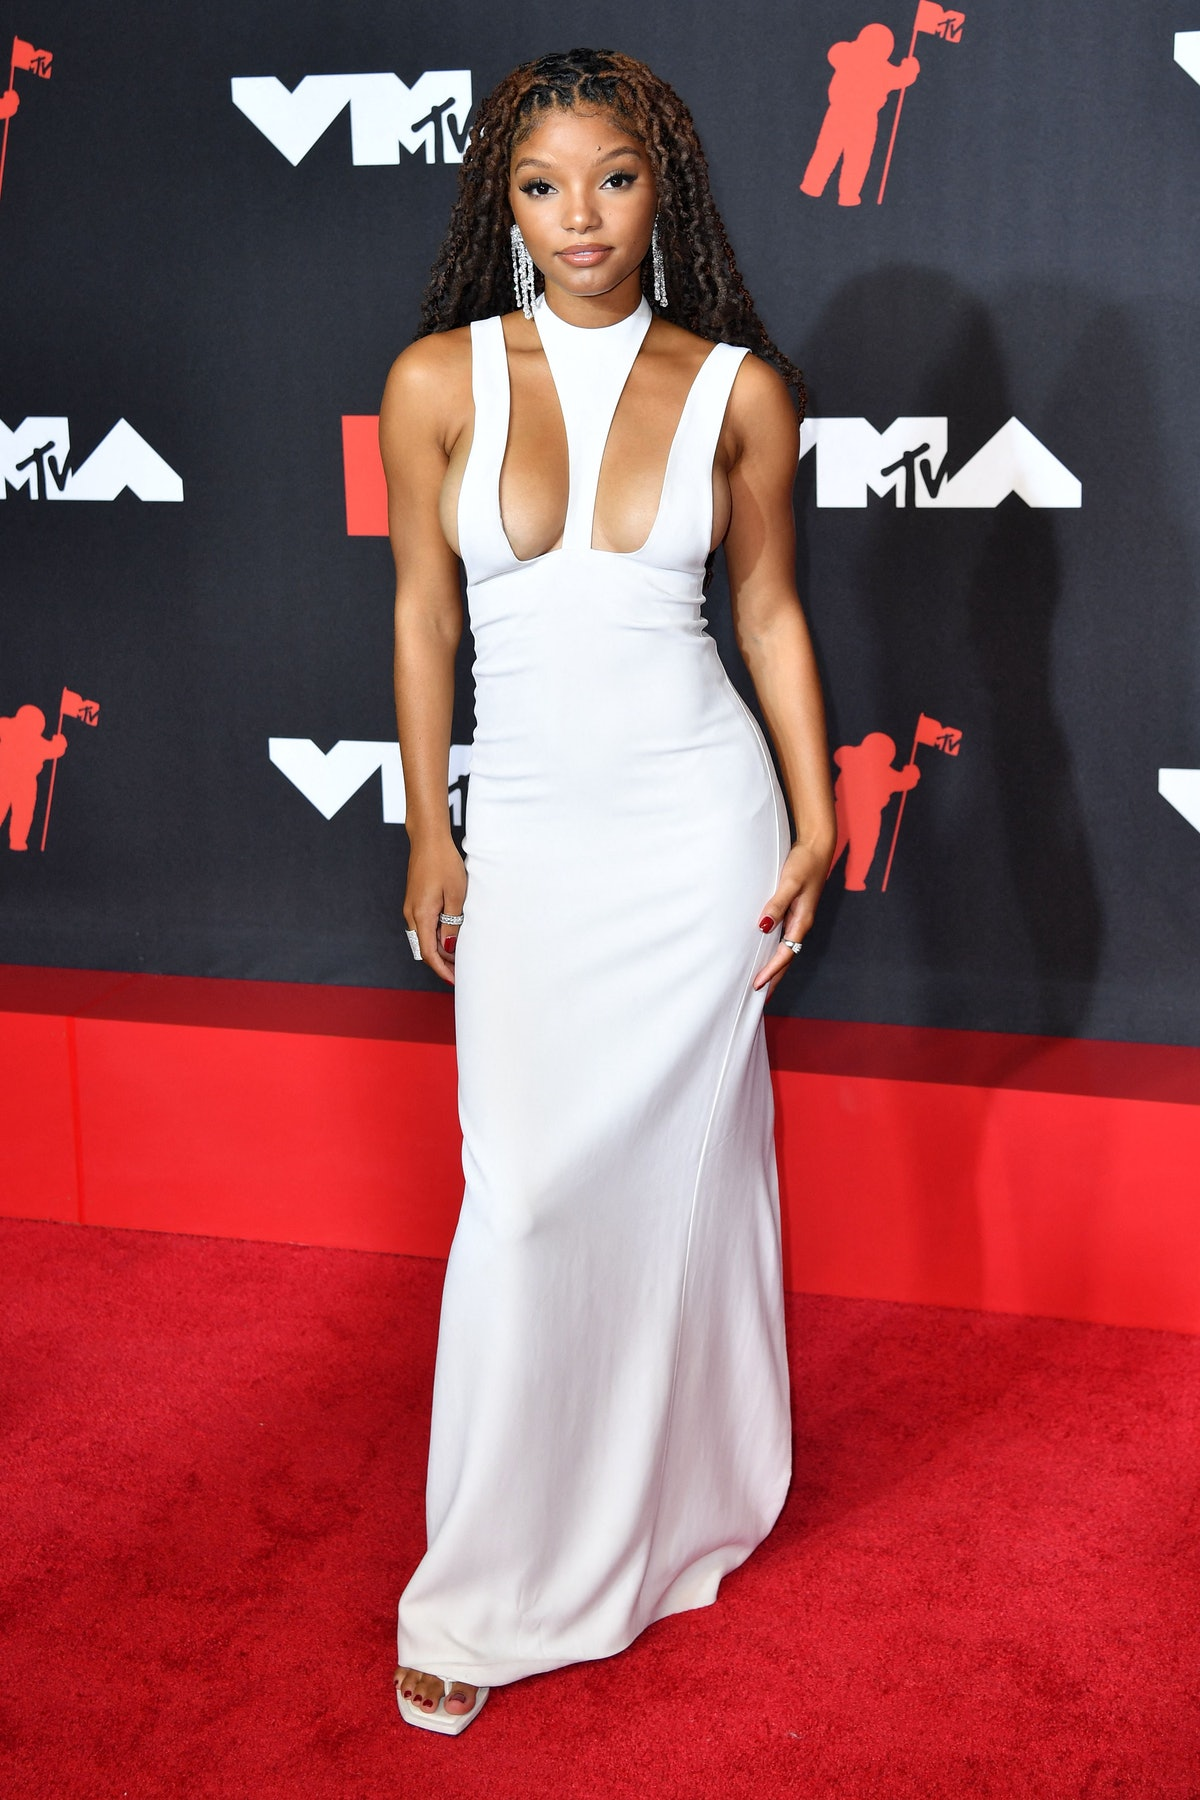 Halle Bailey arrives for the 2021 MTV Video Music Awards at Barclays Center in Brooklyn, New York, S...